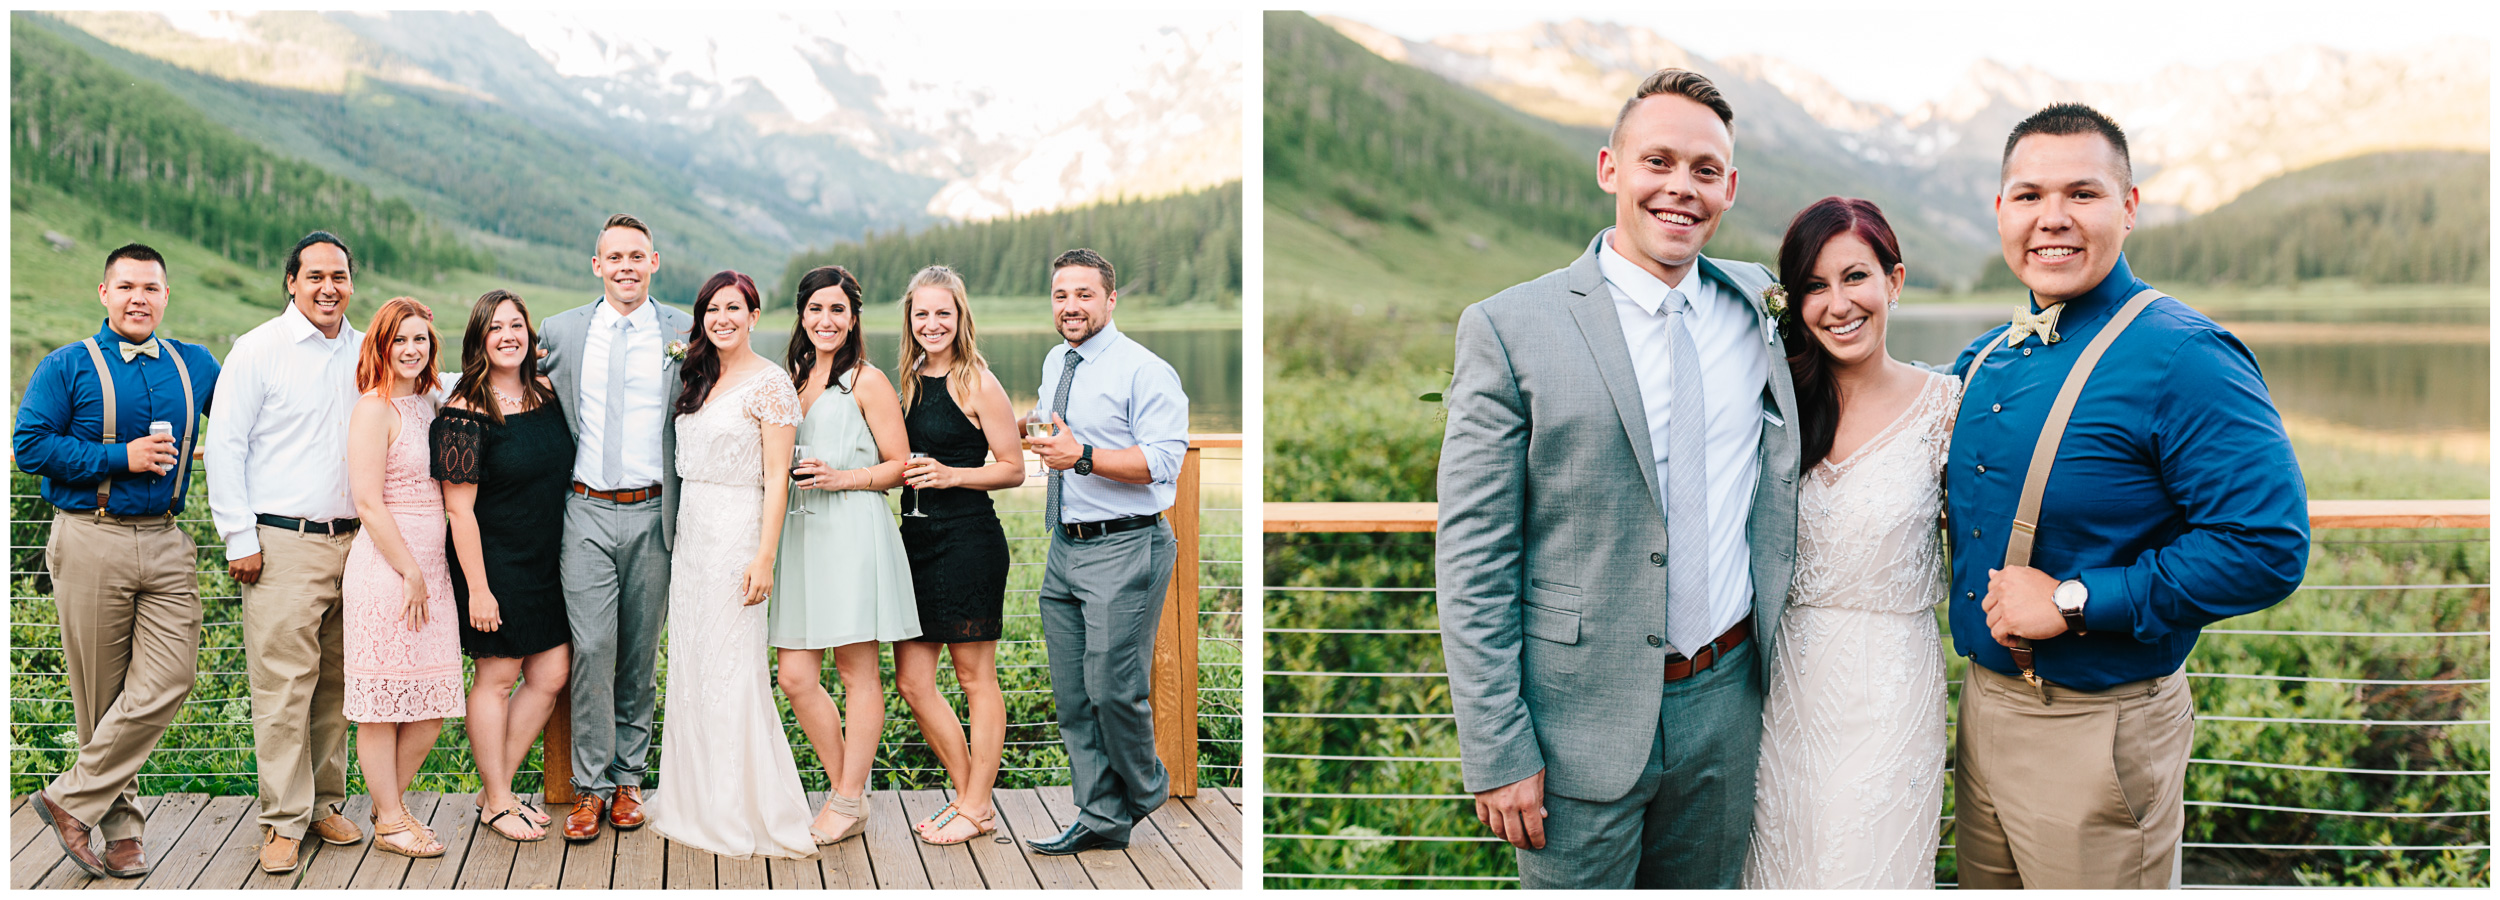 rocky_mountain_wedding_87a.jpg